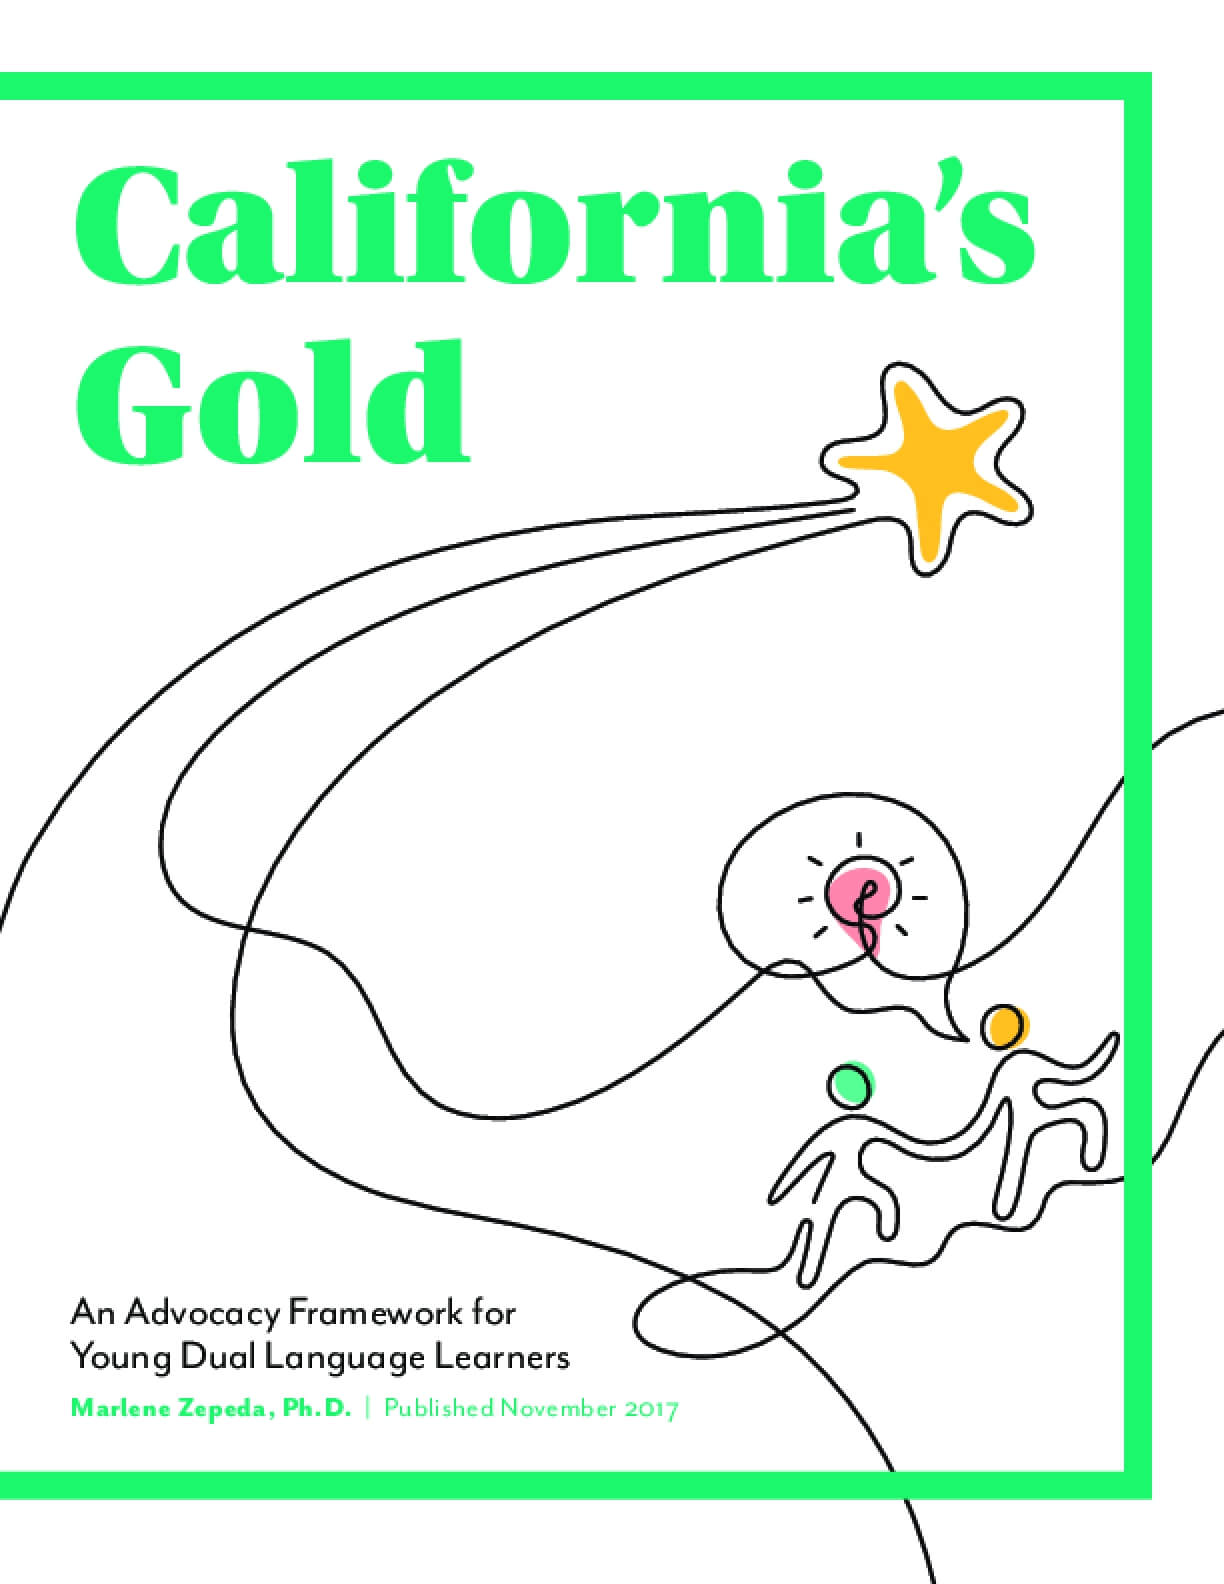 California Gold: An Advocacy Framework for Young Dual Language Learners